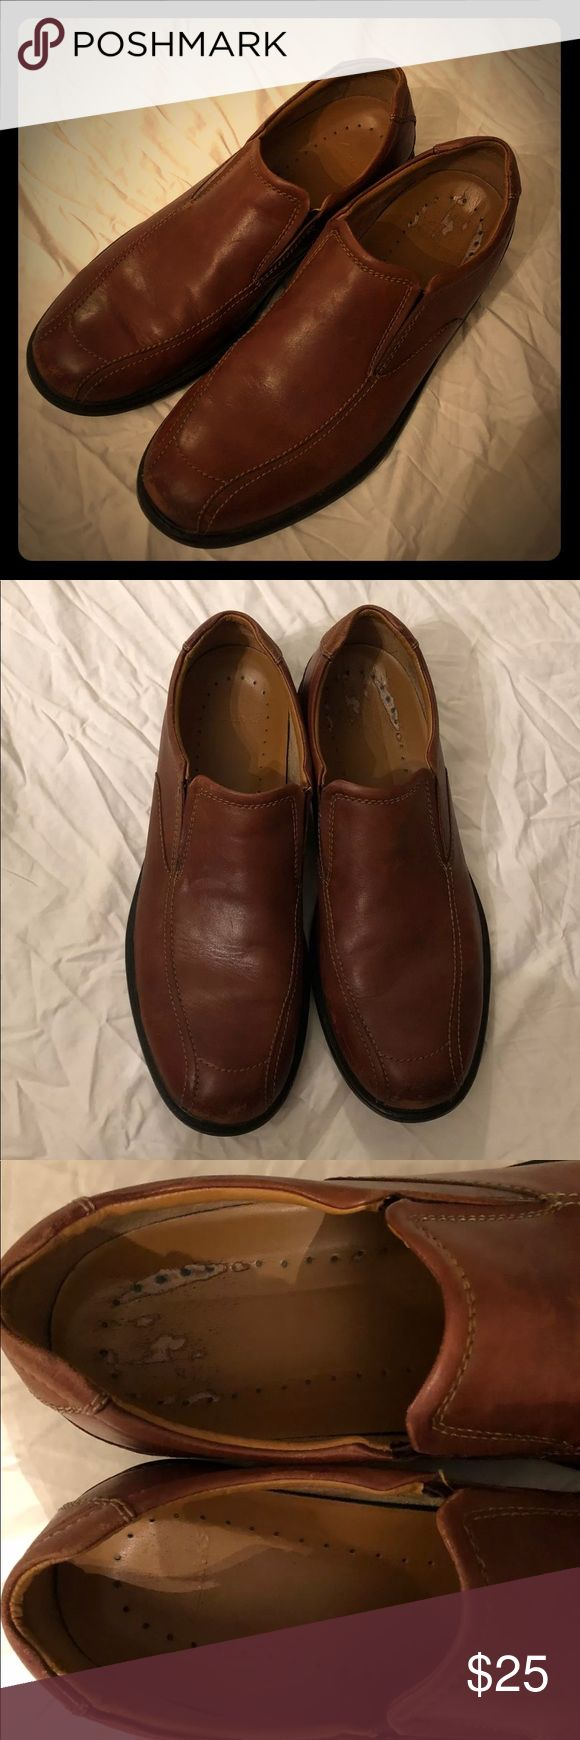 Men's Slip on Clark's Brown leather slip on Clark's.  Has wear and tear. In good condition.  Size 12 Clarks Shoes Loafers & Slip-Ons